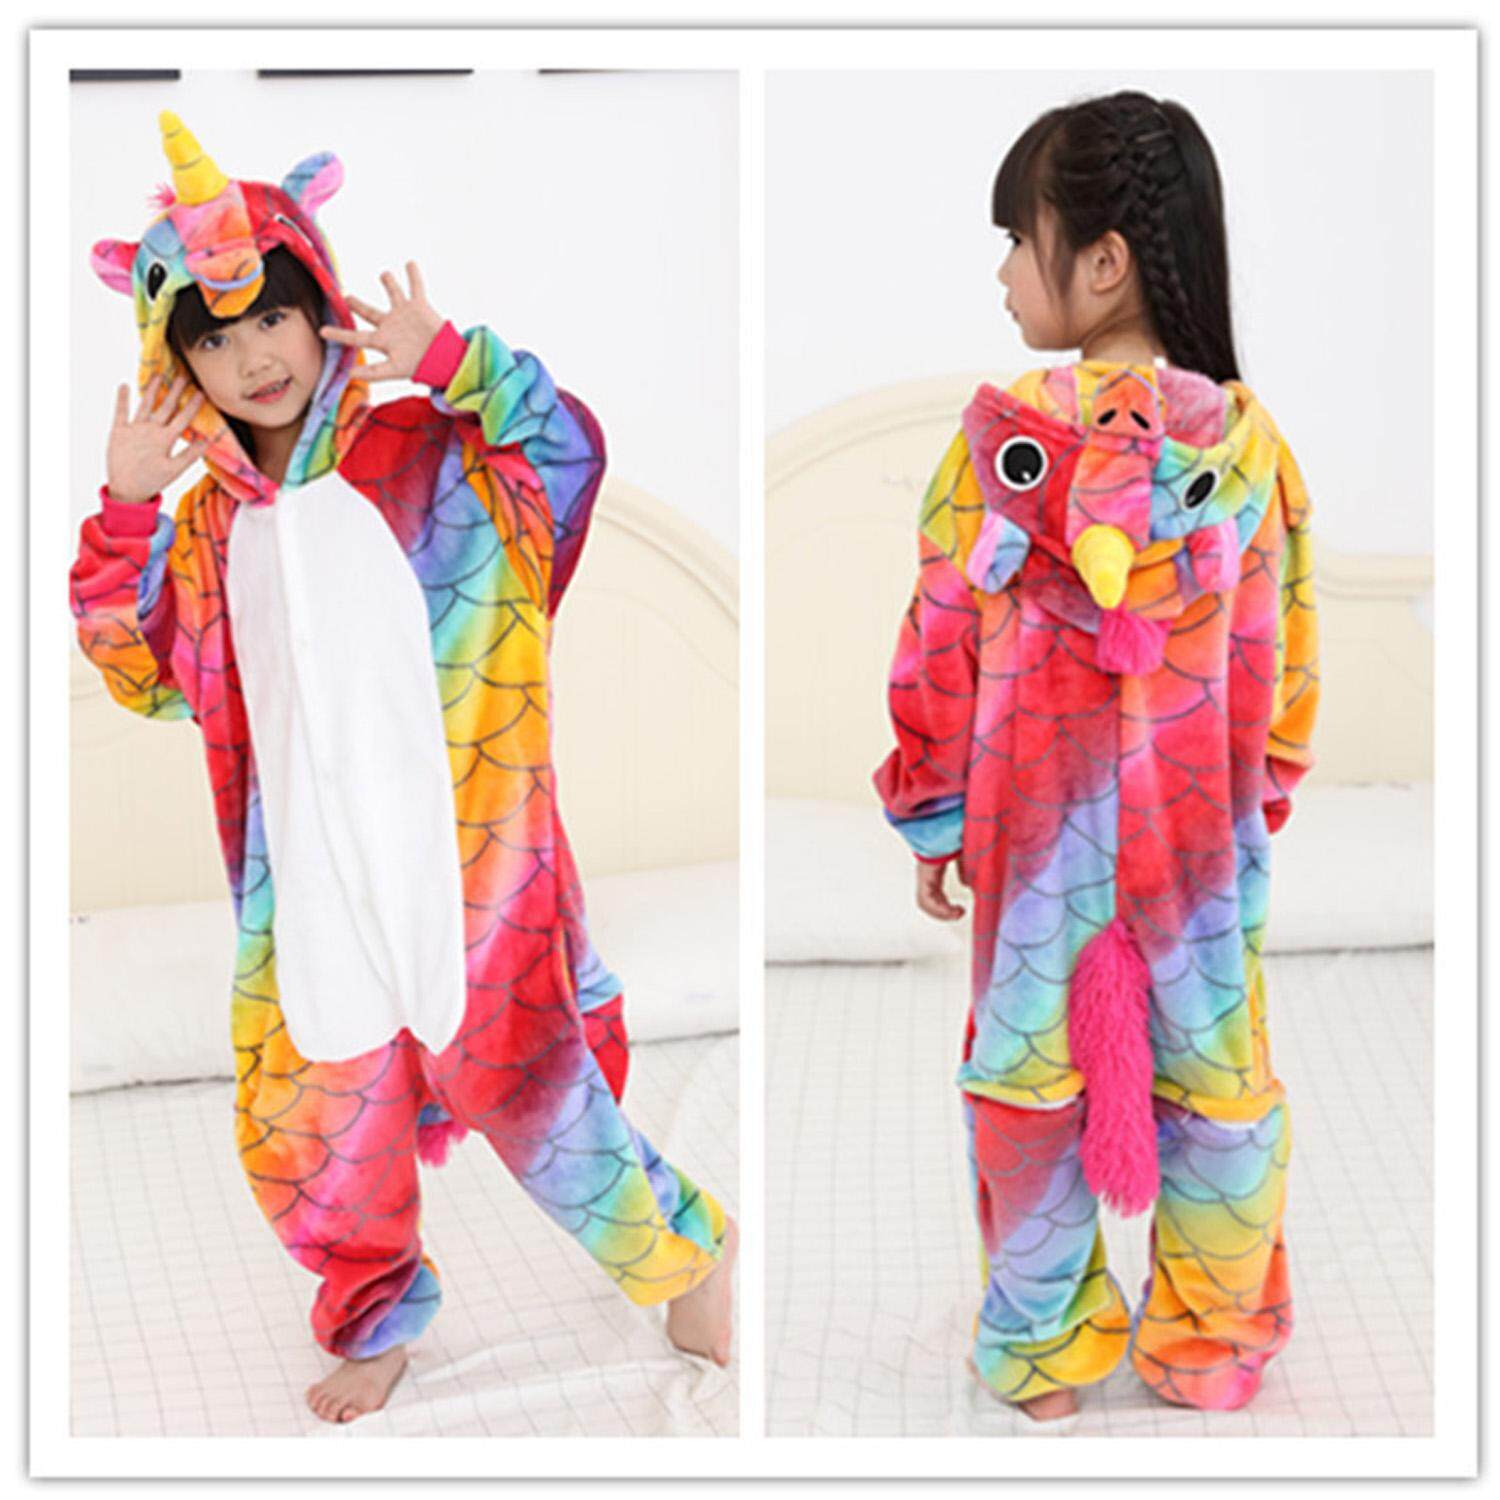 479d058e97 Colorful Unisex Kids Flannel Animal Unicorn Onesie Pajama Suit Night  Clothes Jumpsuits Cosplay Costume Size